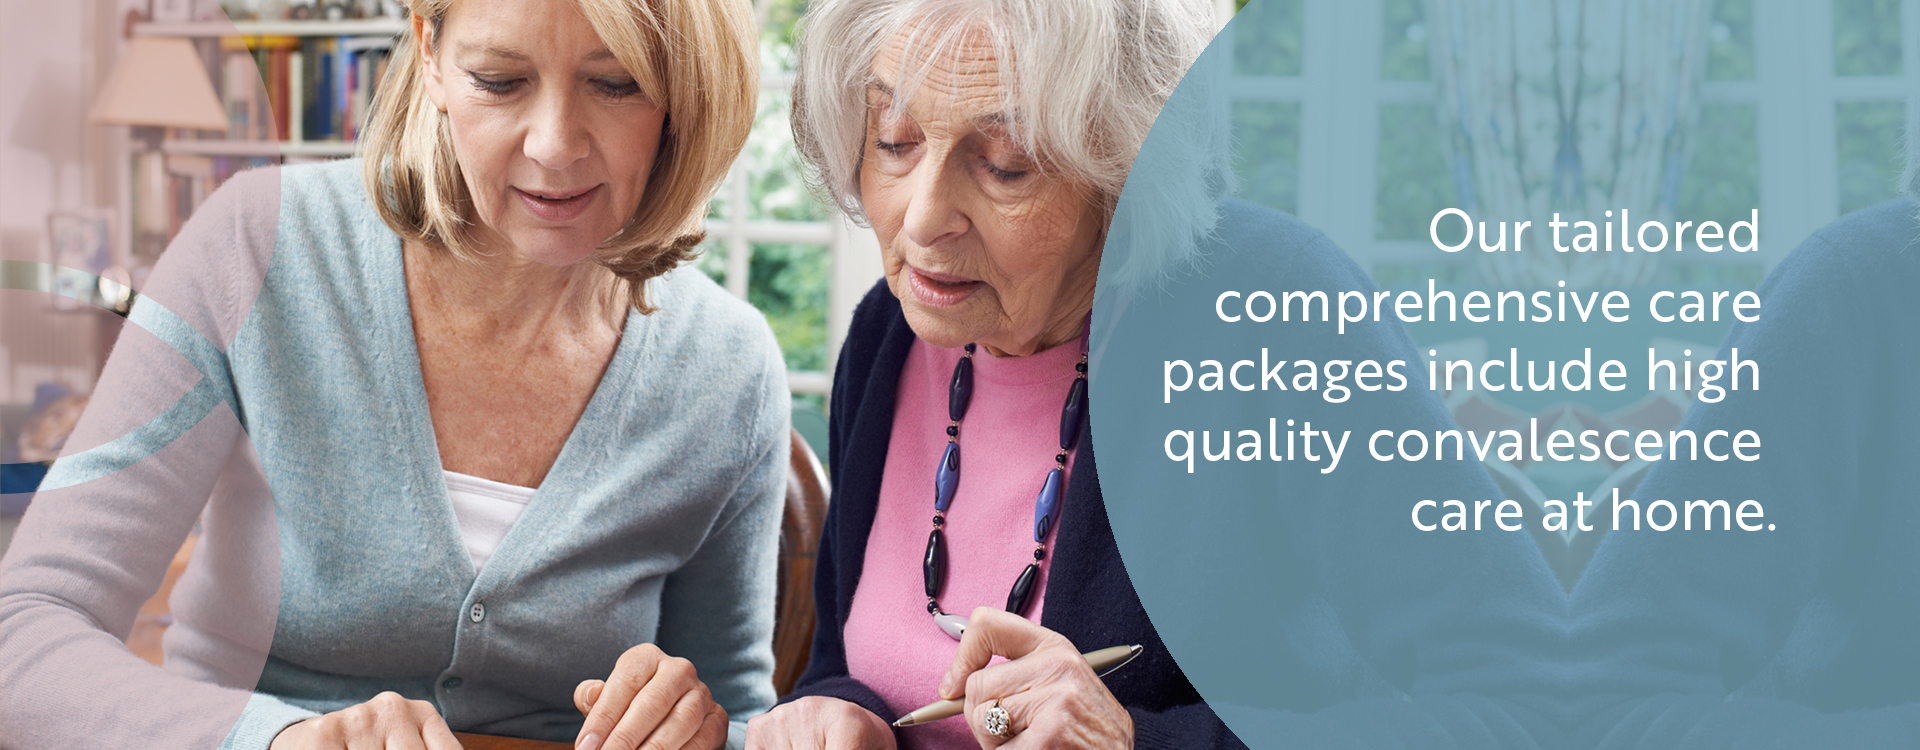 Virtue Integrated Care | Personalised Support at Home | Dedicated Medical Support | Nurse Led Personalised Assistance